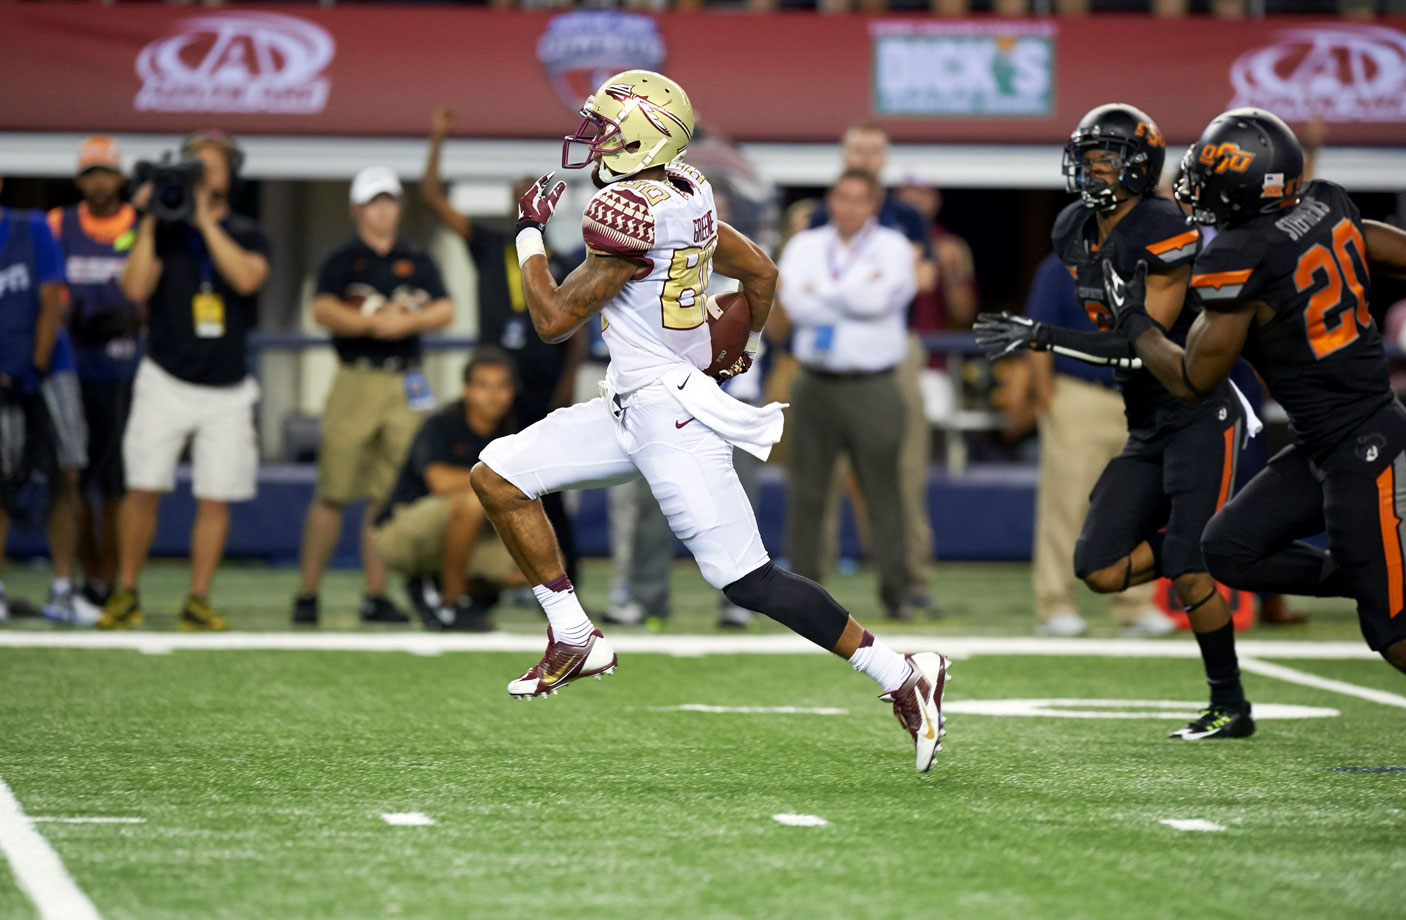 In the first of what would be a season full of tight victories, the Seminoles capitalized on a fourth-quarter fumble by Cowboys quarterback J.W. Walsh to pull away for the win. Rashad Greene shines with 203 yards receiving.